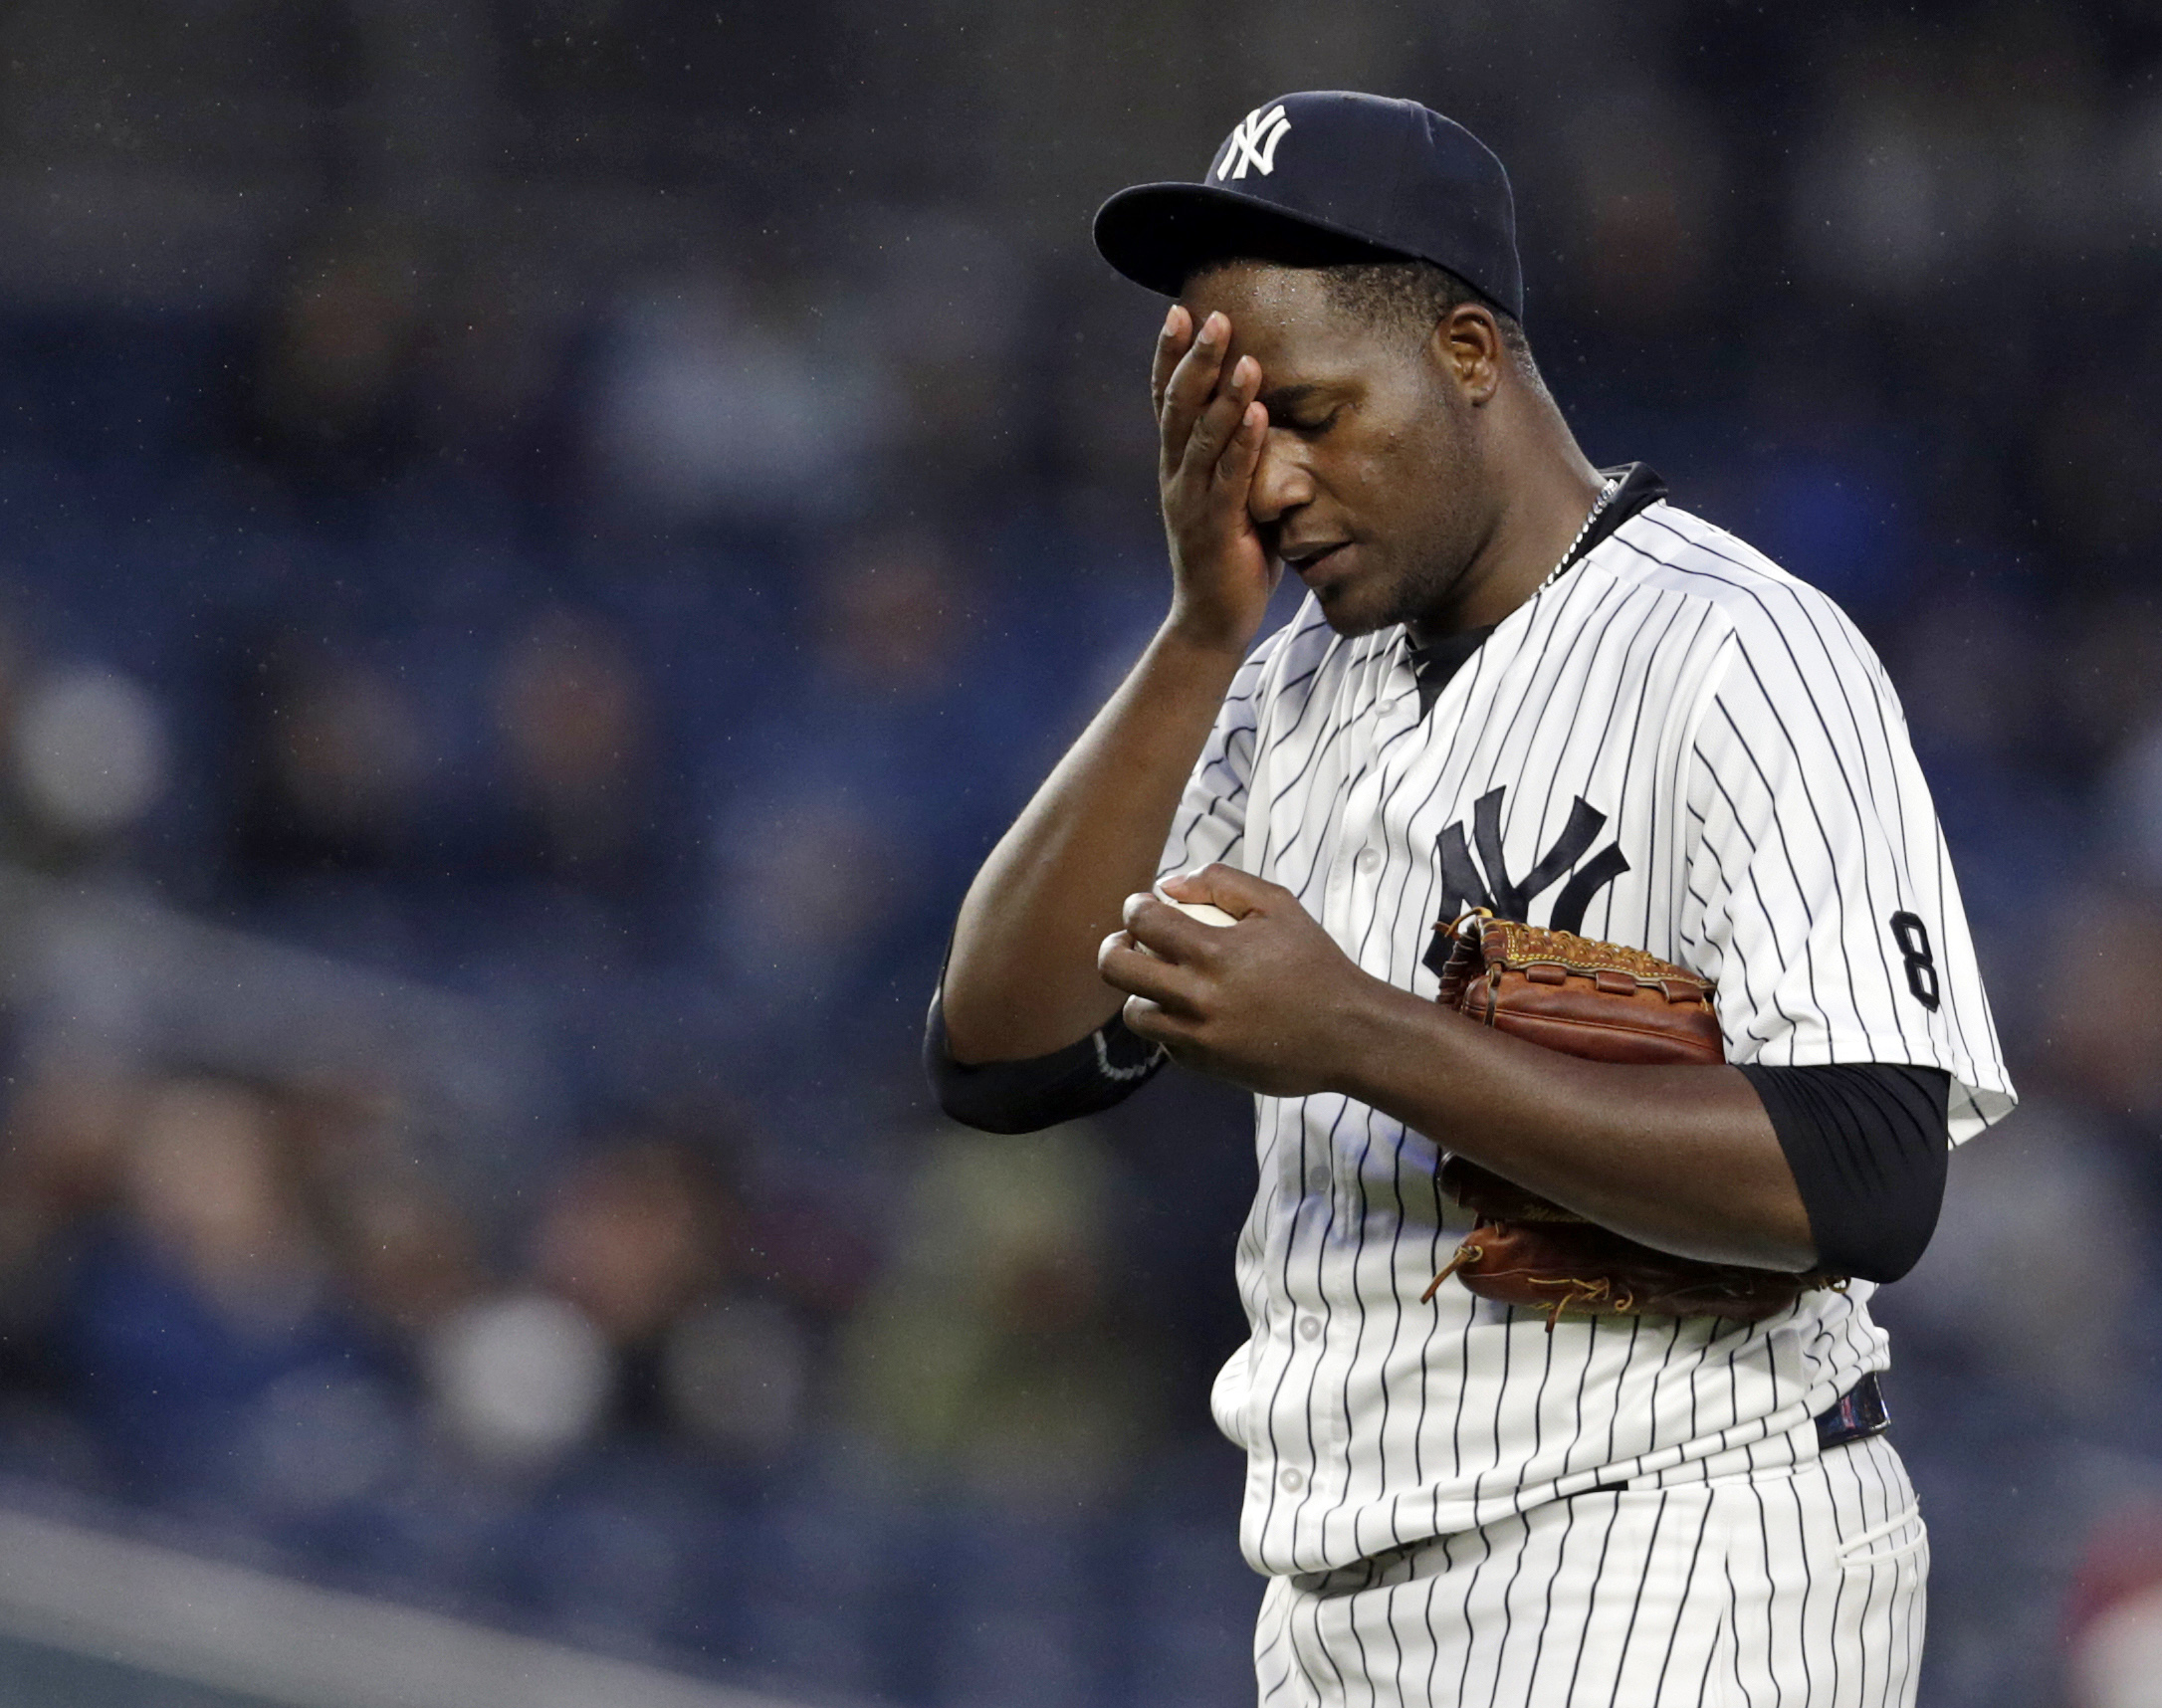 New York Yankees starting pitcher Michael Pineda (35) reacts during the second inning against the Boston Red Sox at Yankee Stadium.  Image supplied by Action Images /Adam Hunger.